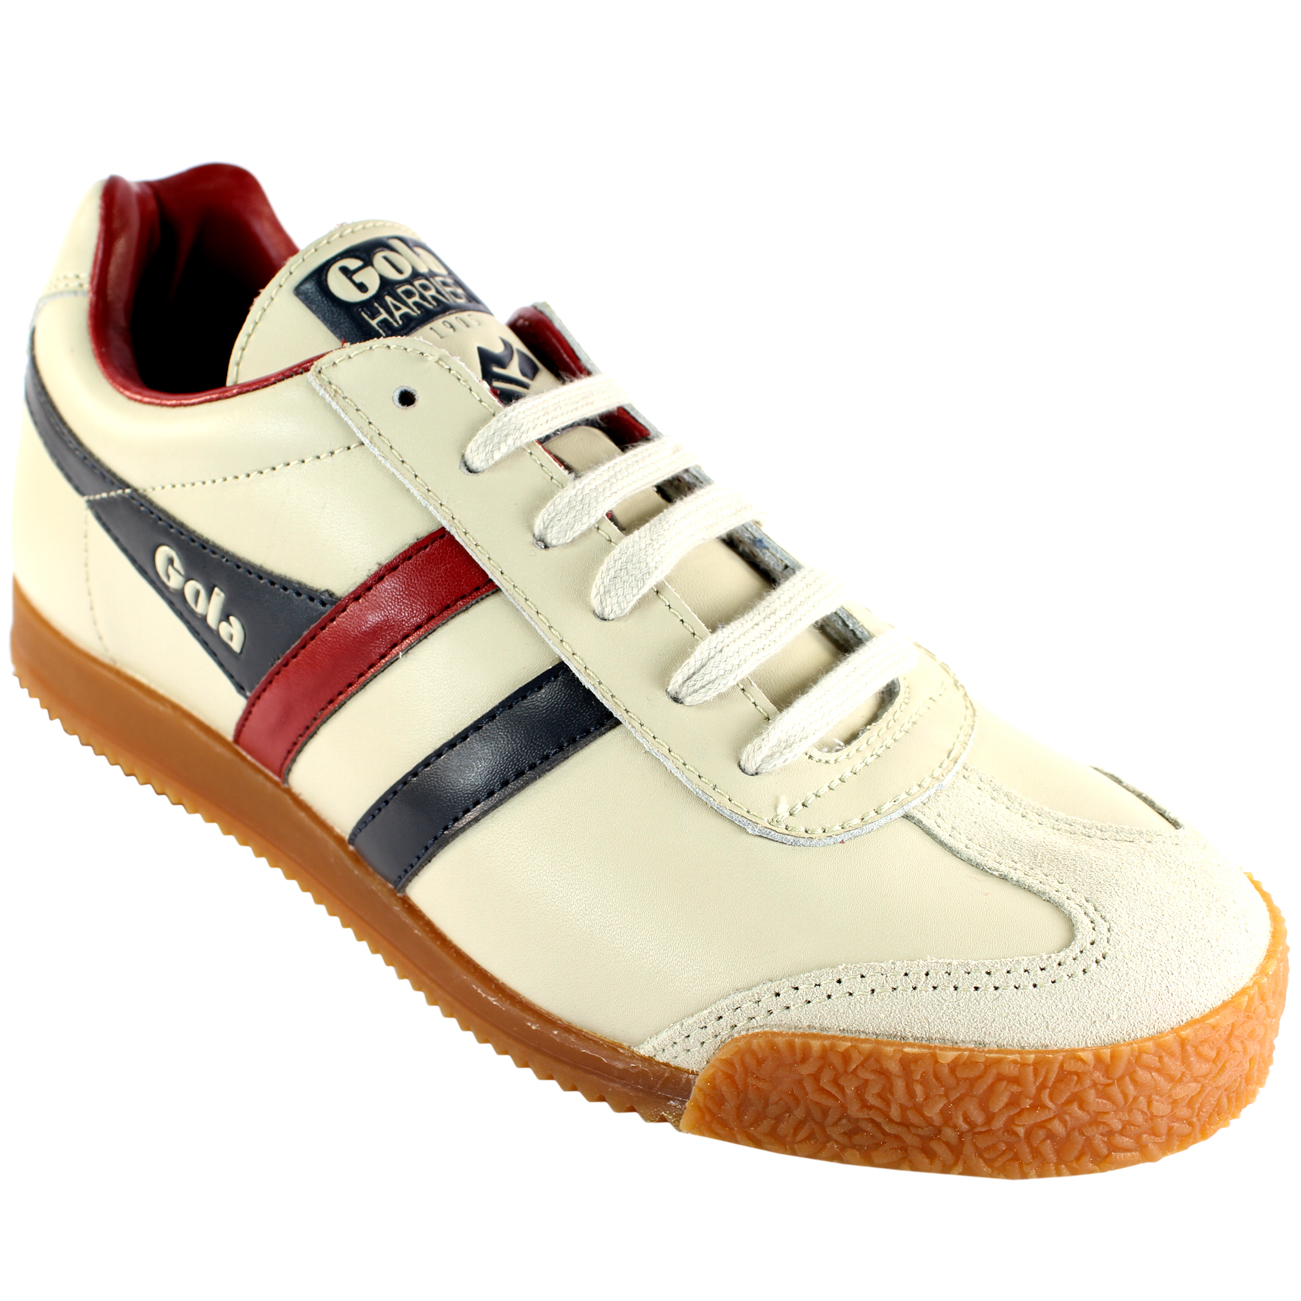 MENS GOLA HARRIER PU LEATHER STRIPED RETRO SUEDE TIP TRAINERS UK ALL SIZES